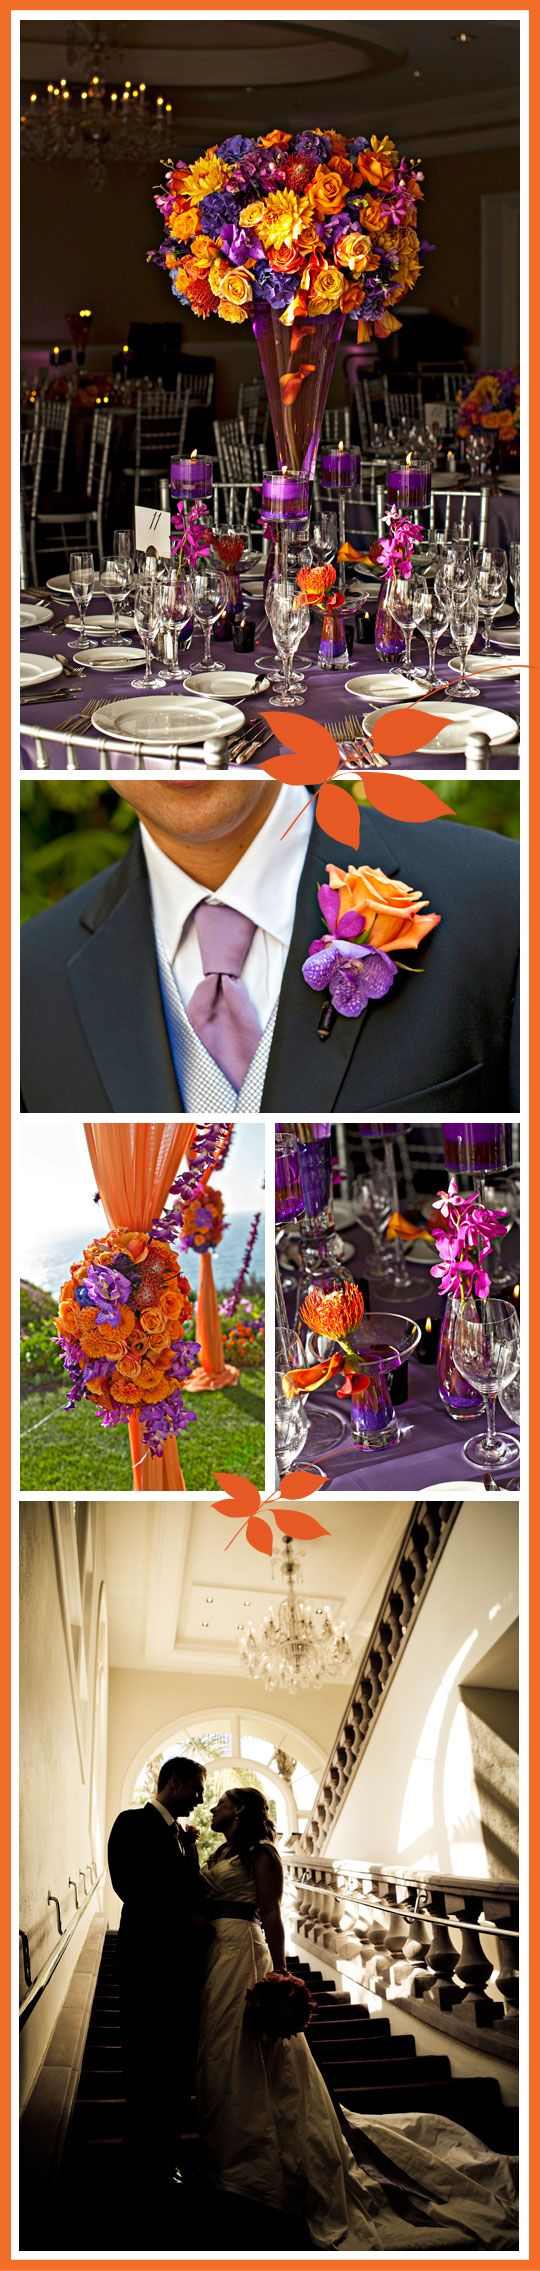 tangerine and purple reception wedding flowers,  wedding decor, wedding flower centerpiece, wedding flower arrangement, add pic source on comment and we will update it. www.myfloweraffair.com can create this beautiful wedding flower look.